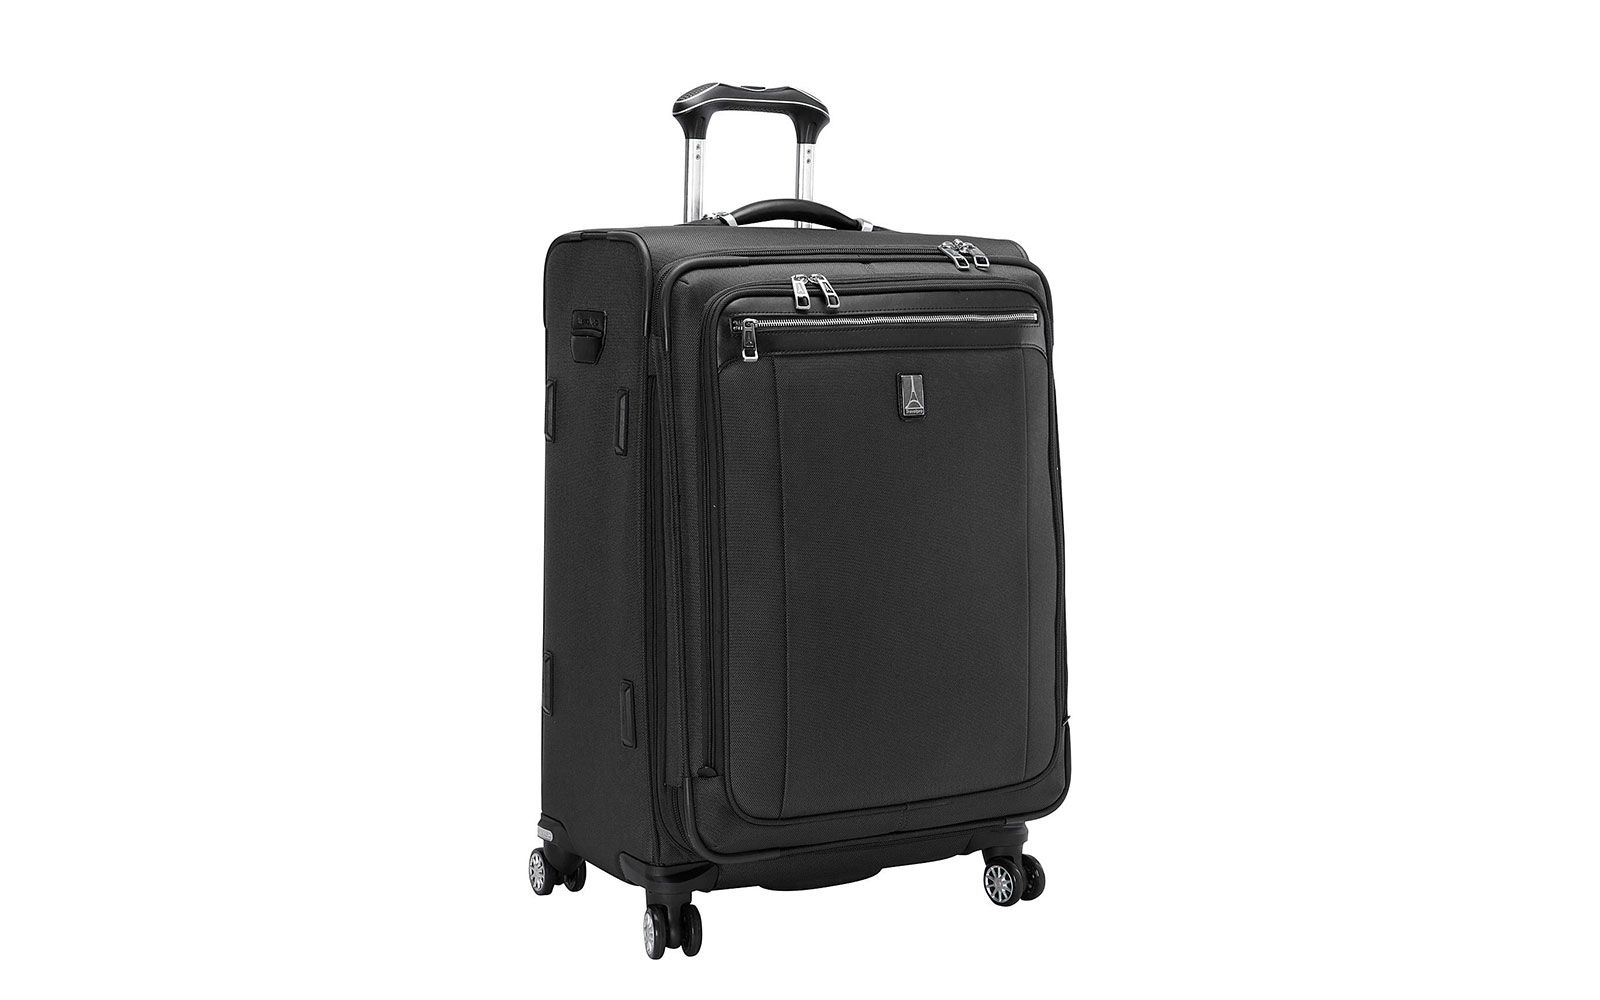 Best Checked Luggage 2020.The Best Checked Luggage You Can Buy In 2019 Travel Leisure